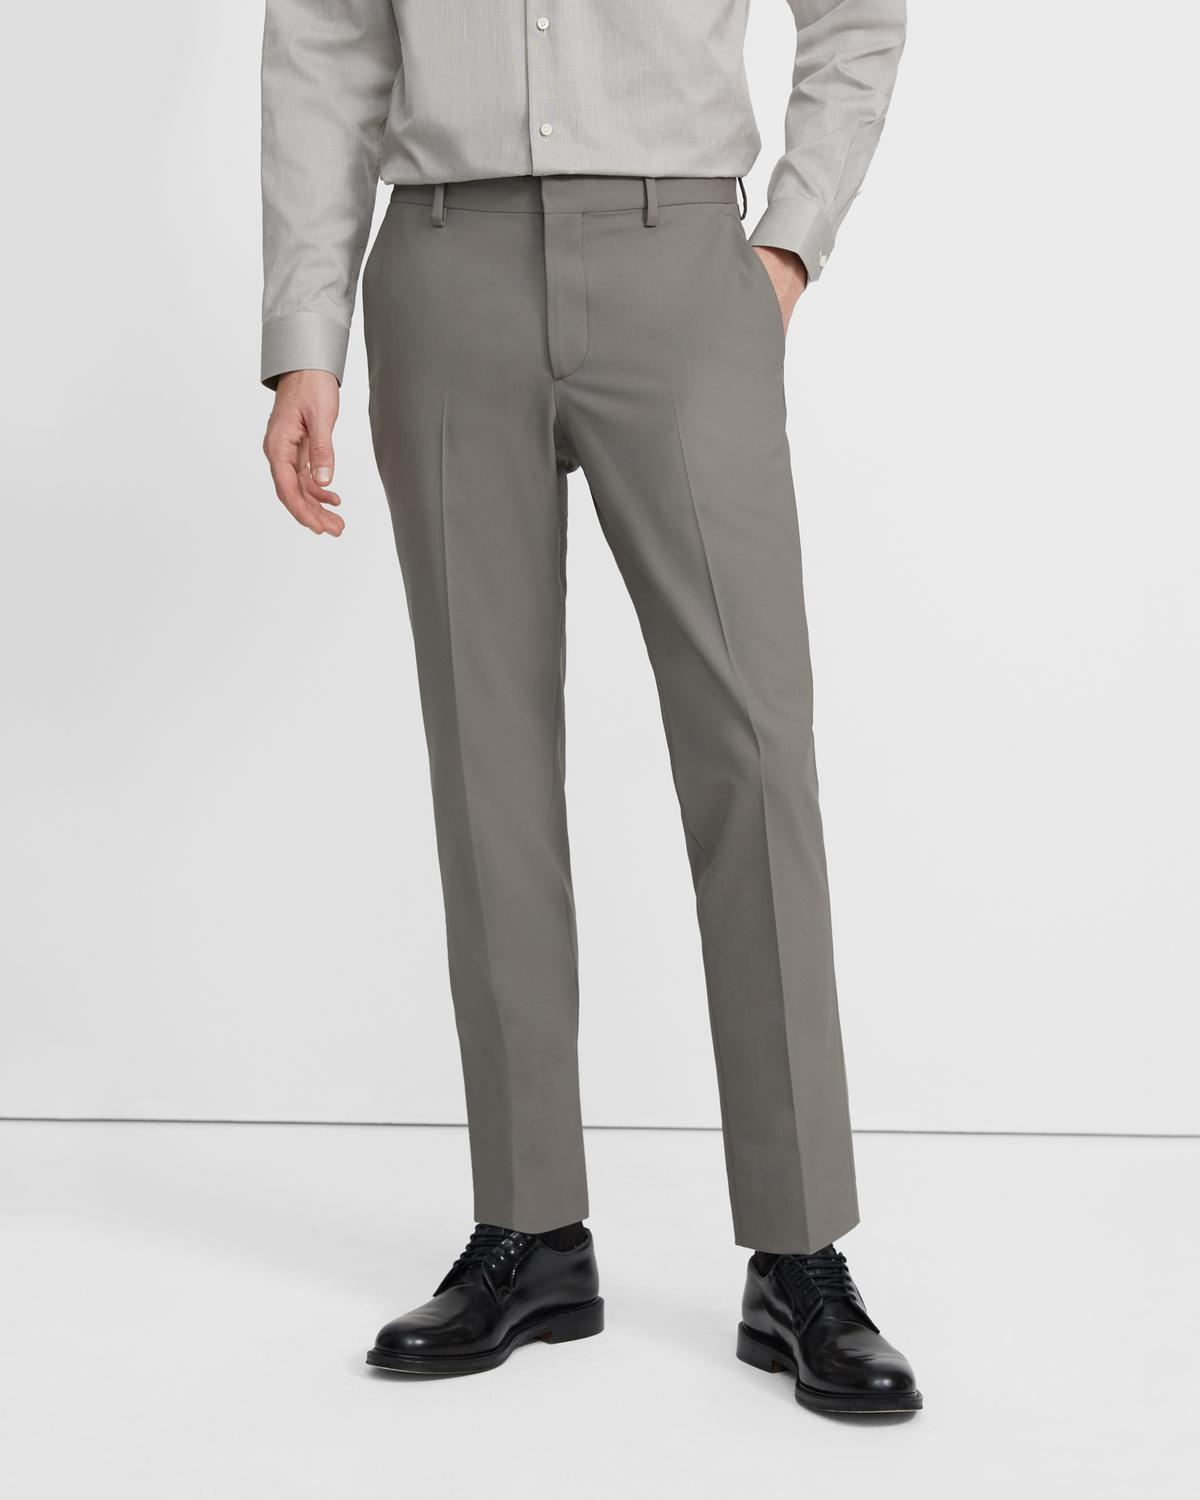 Zaine Pant in Good Wool